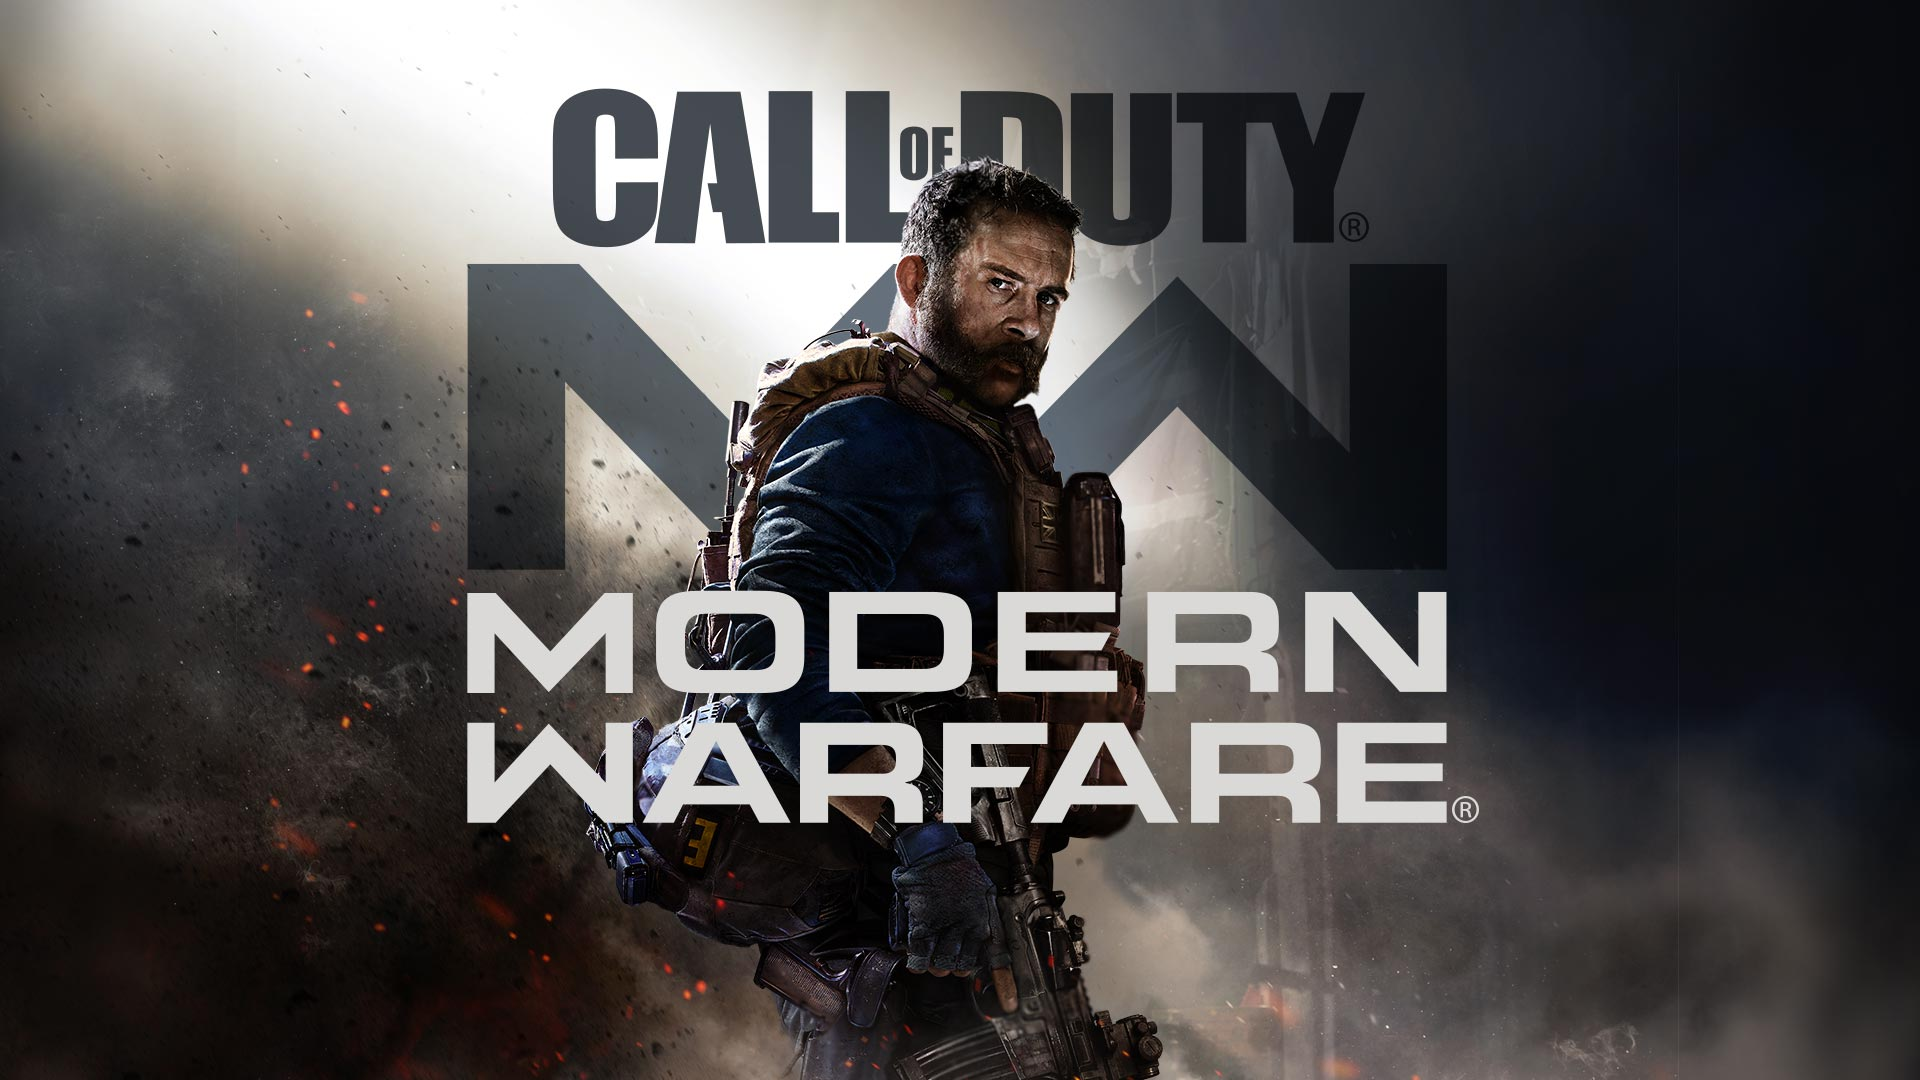 Call of Duty Modern Warfare Warzone Apk Android Mobile Version Full Free Game Download